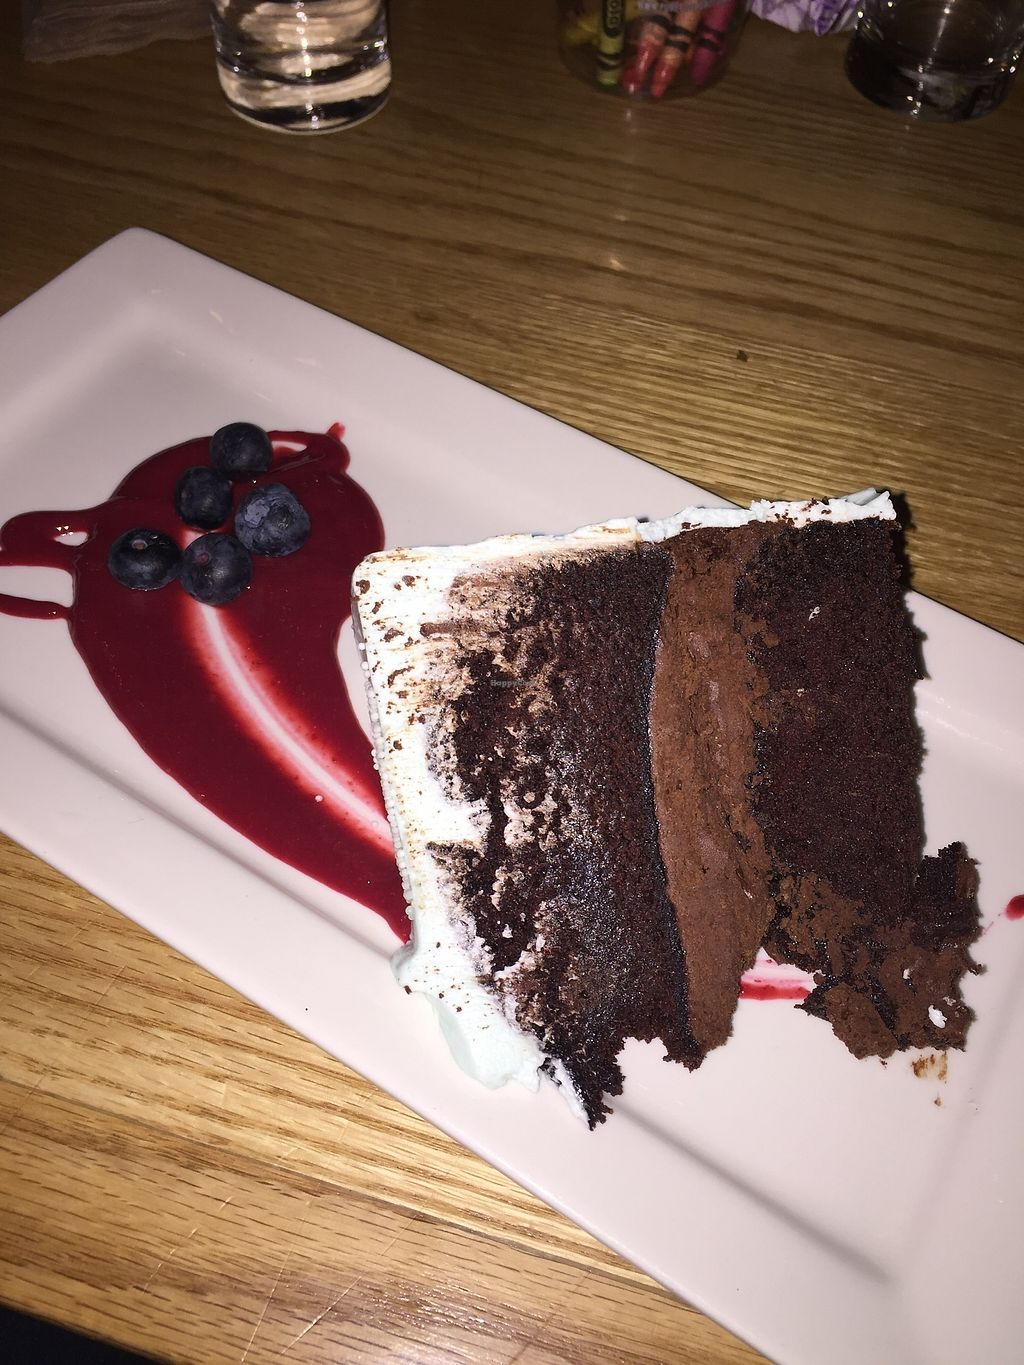 """Photo of Pure Kitchen - Richmond Rd  by <a href=""""/members/profile/KarinaChartrand"""">KarinaChartrand</a> <br/>Vegan chocolate cake with vanilla frosting <br/> February 18, 2018  - <a href='/contact/abuse/image/53042/360607'>Report</a>"""